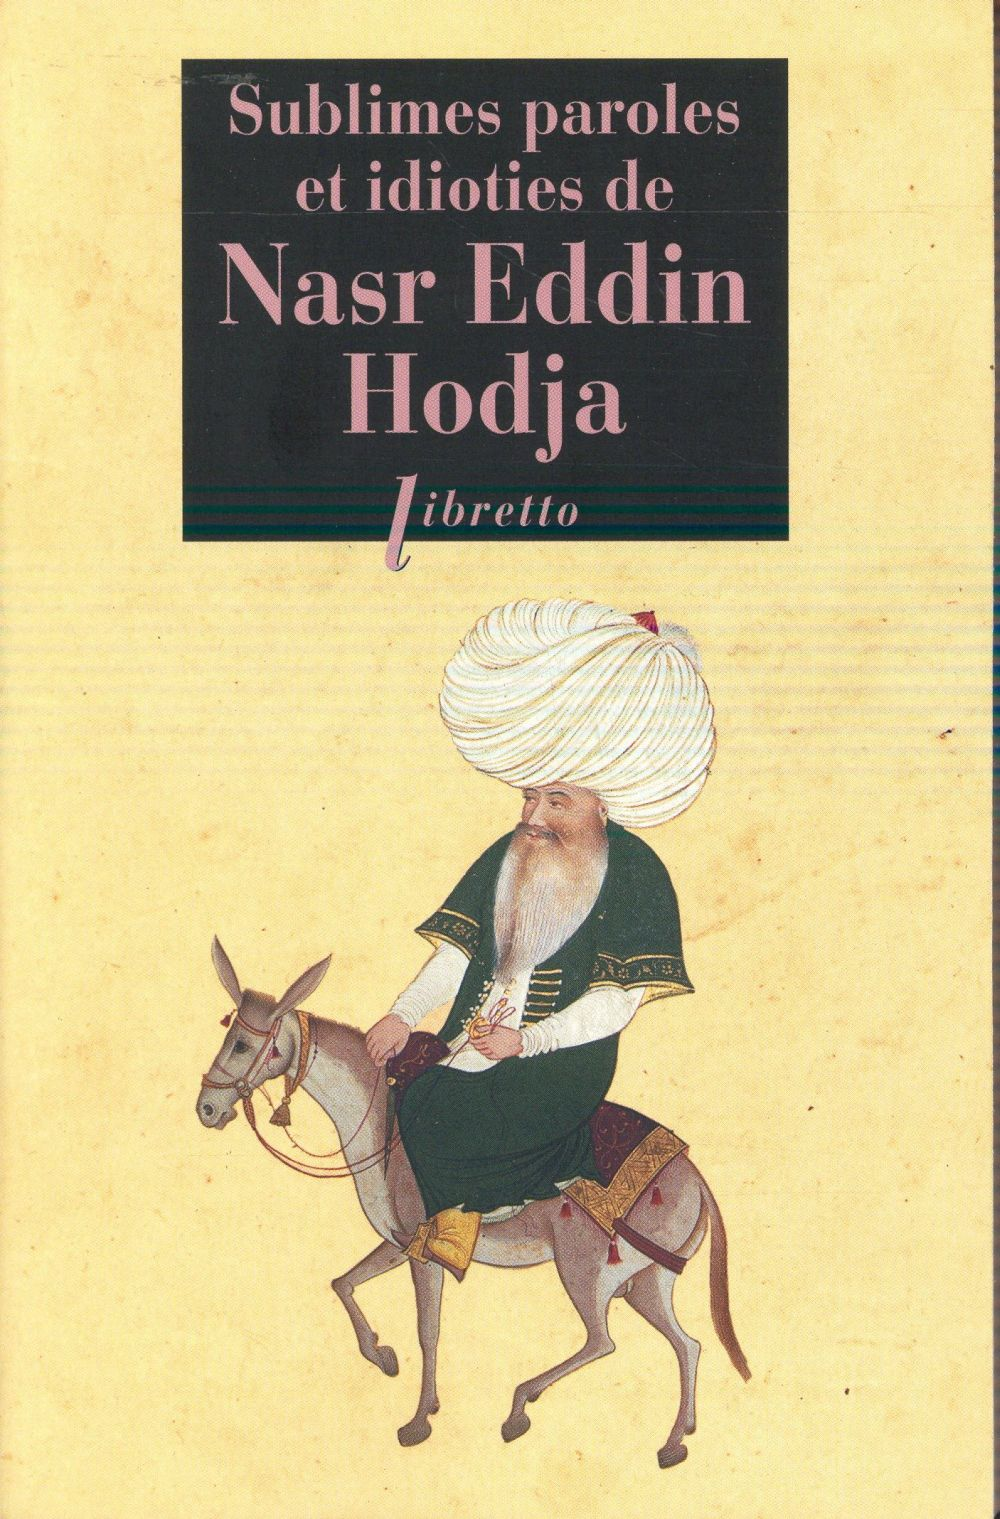 Sublimes paroles et idioties de nasr eddin hodja ; tout nasr eddin, ou presque